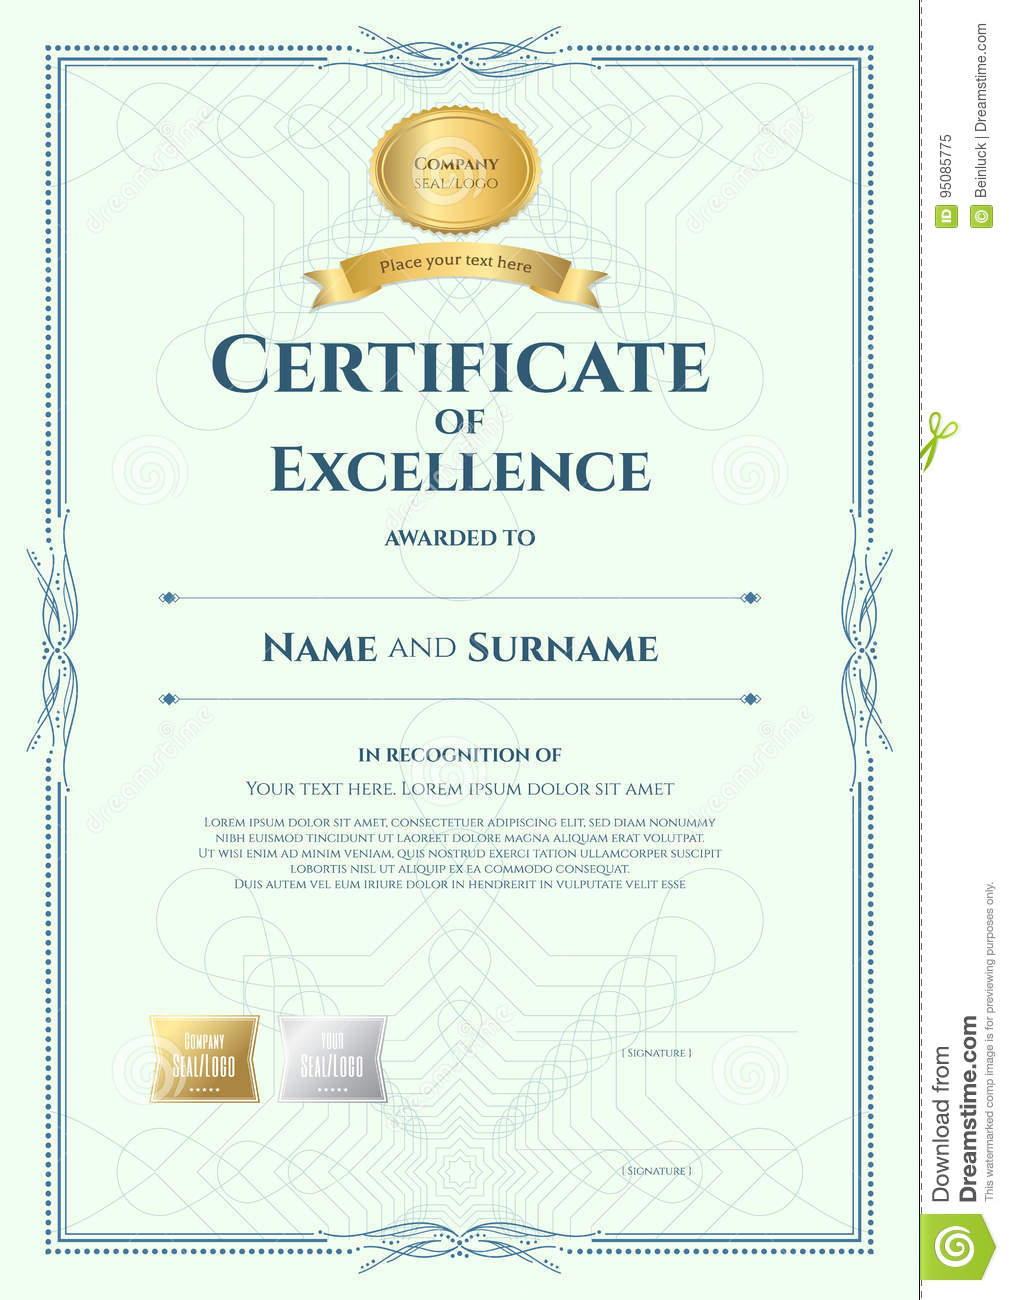 Portrait Certificate Of Excellence Template With Award Ribbon On